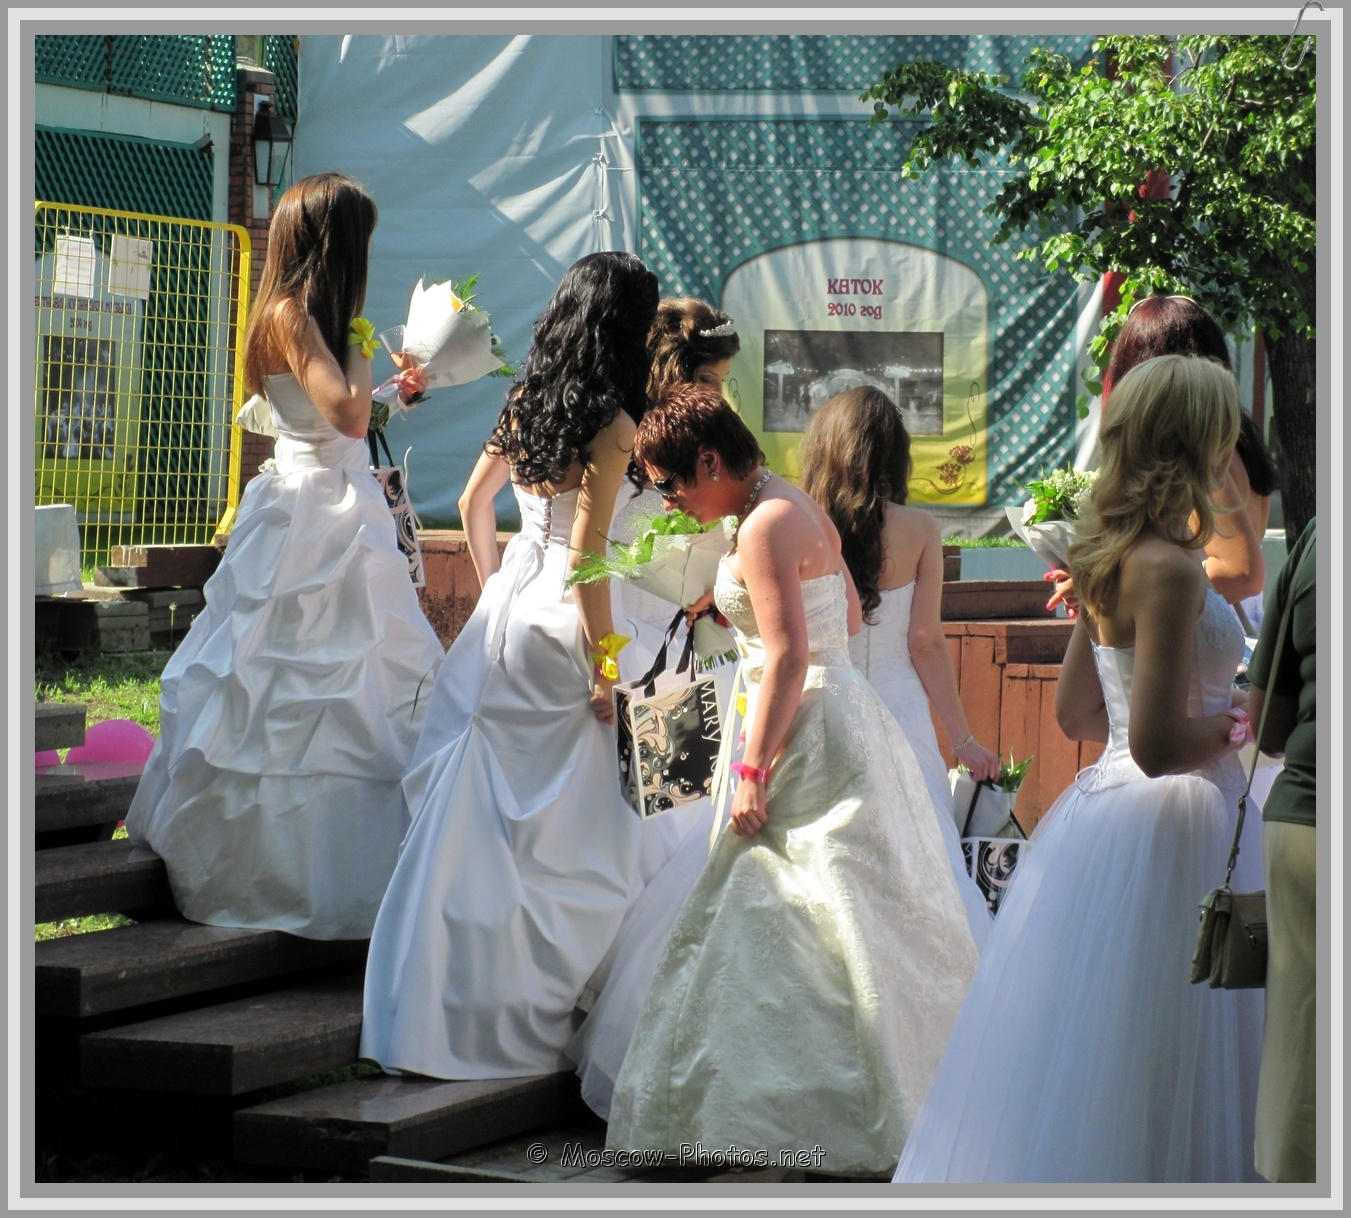 Moscow Runaway Brides at Summer Day